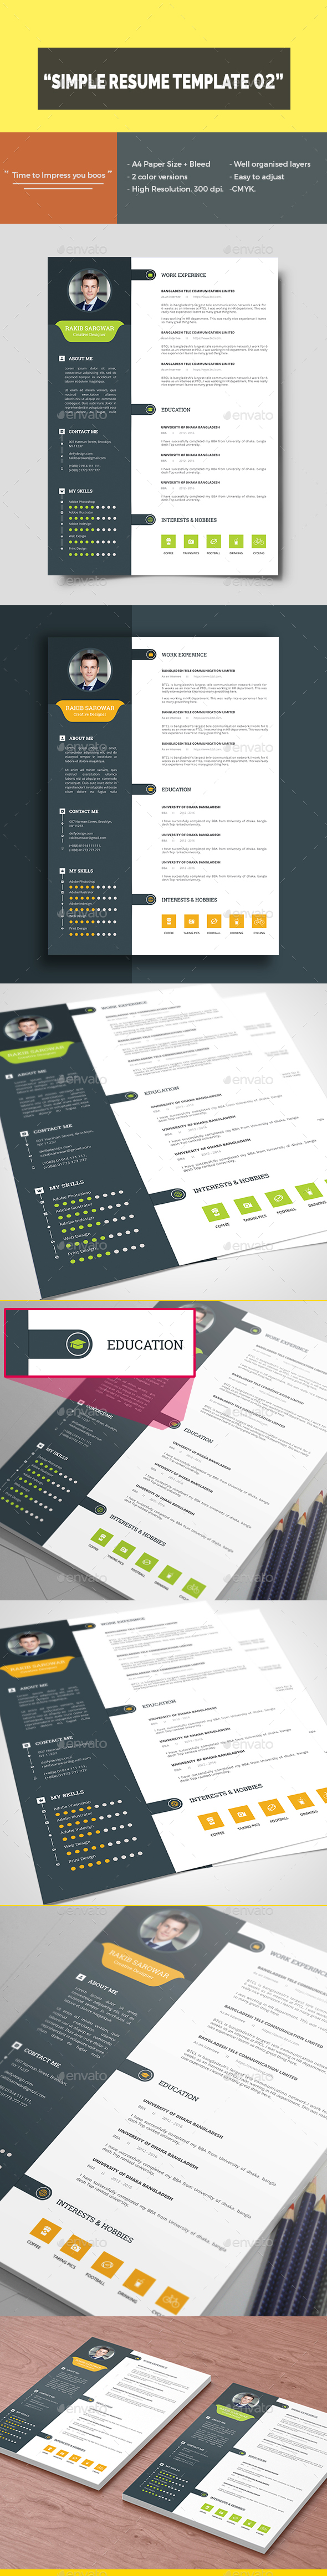 Clean Resume Template 02